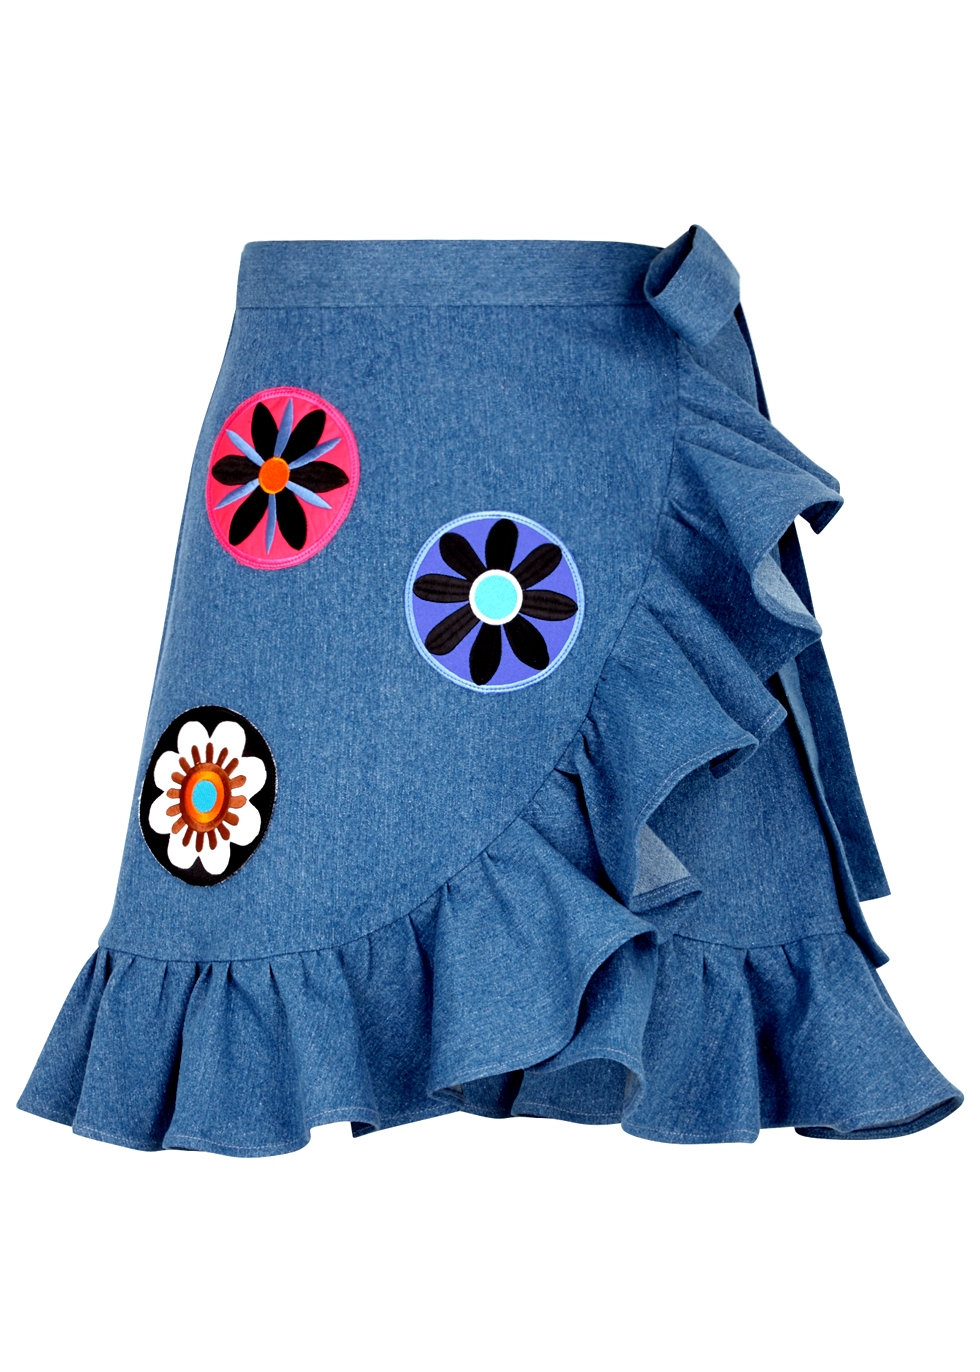 KATYA DOBRYAKOVA FLOWERS CIRCLE DENIM WRAP MINISKIRT